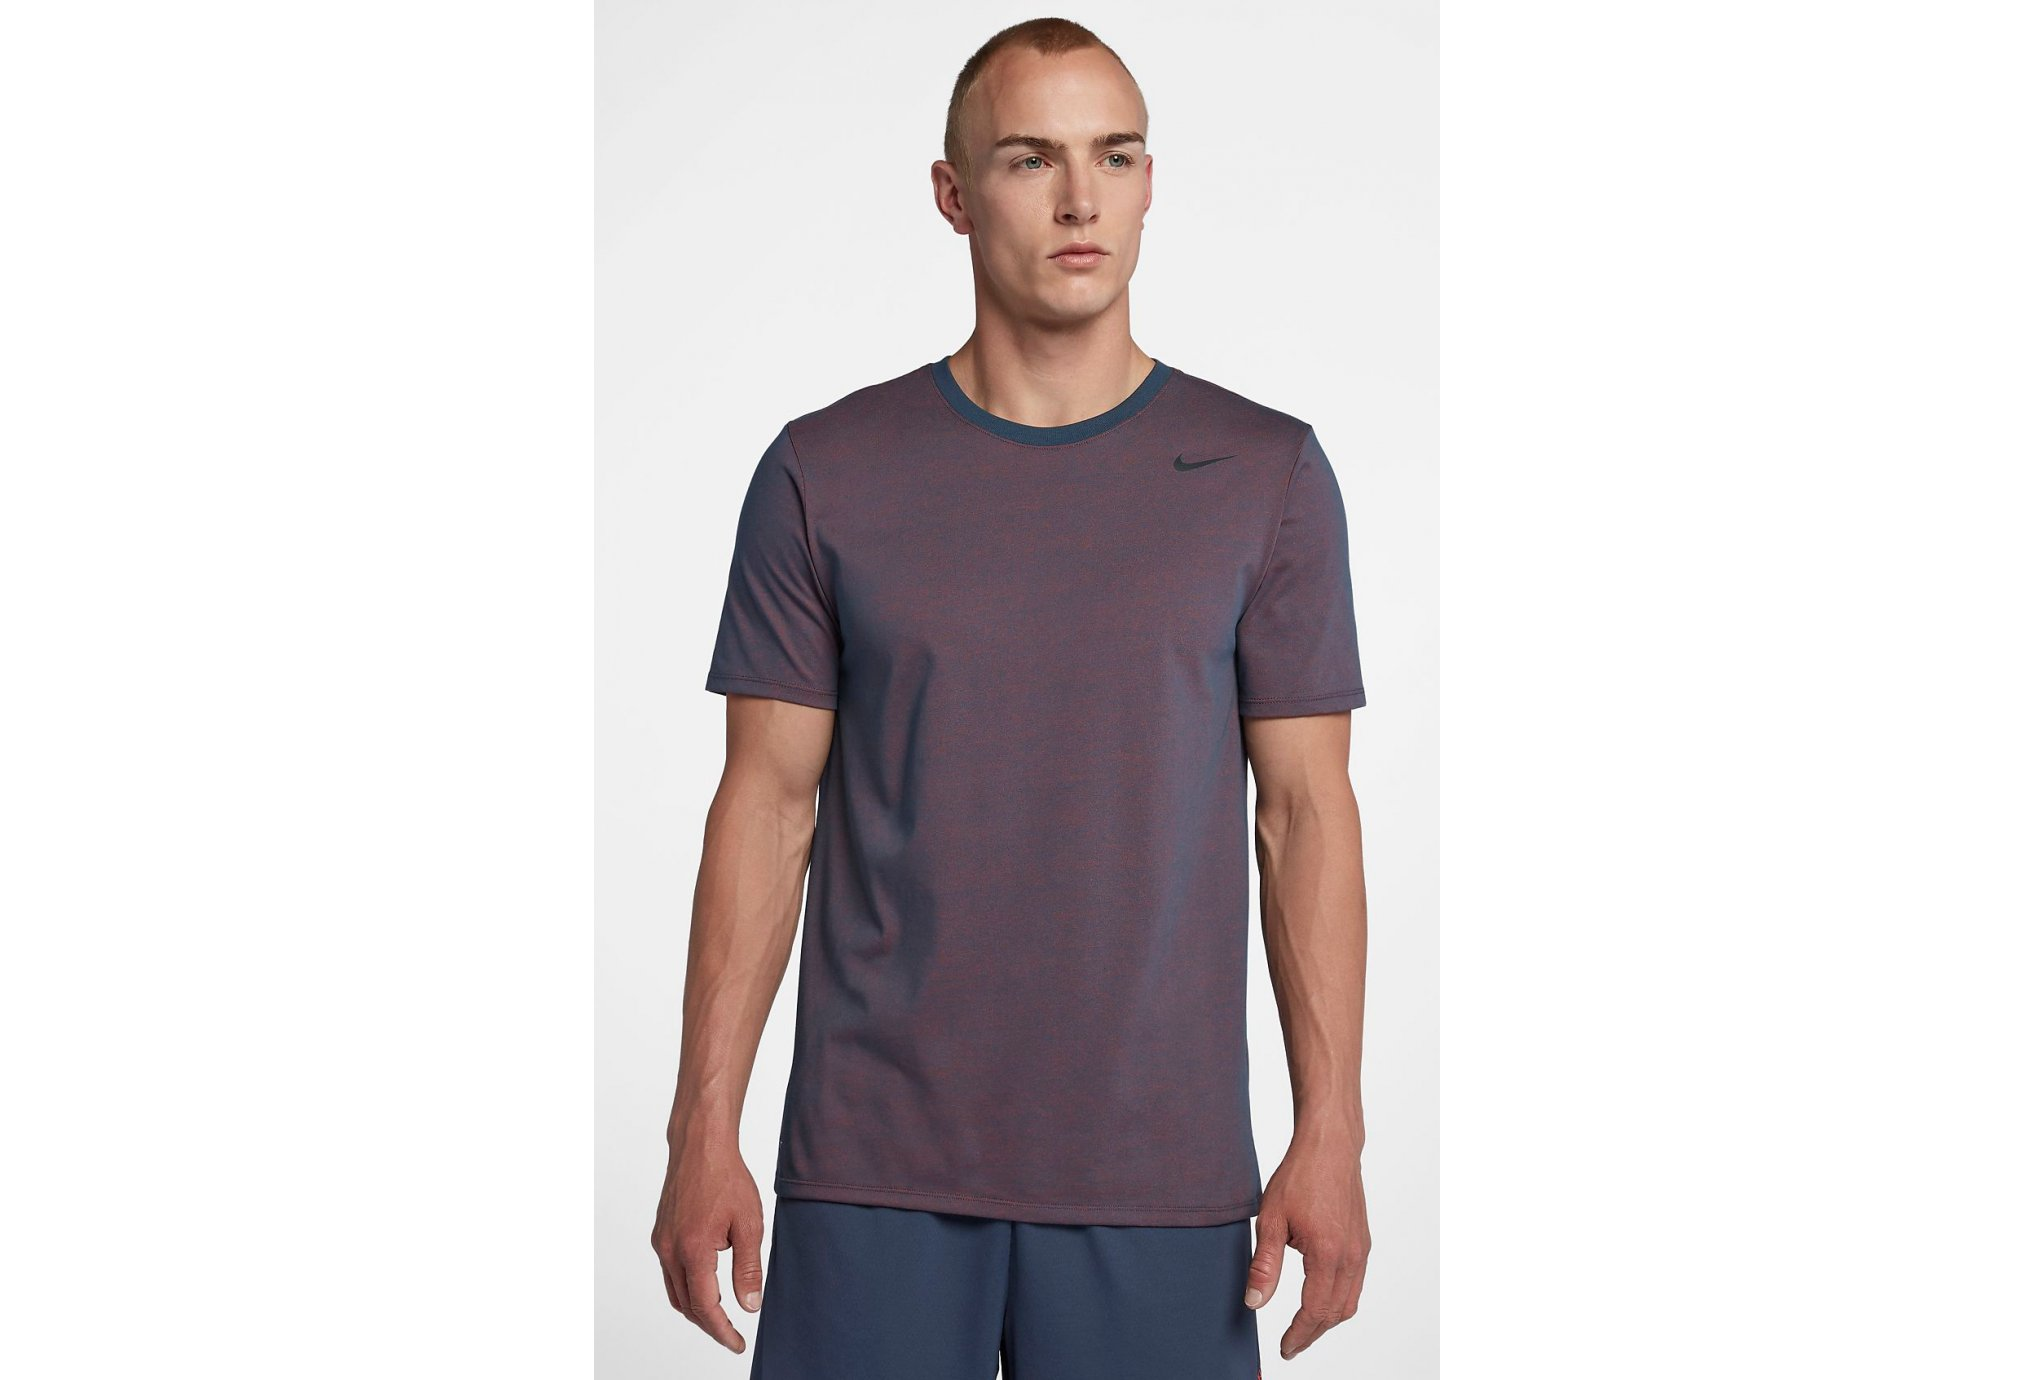 Nike Dri-Fit Cotton Version 2.0 M vêtement running homme